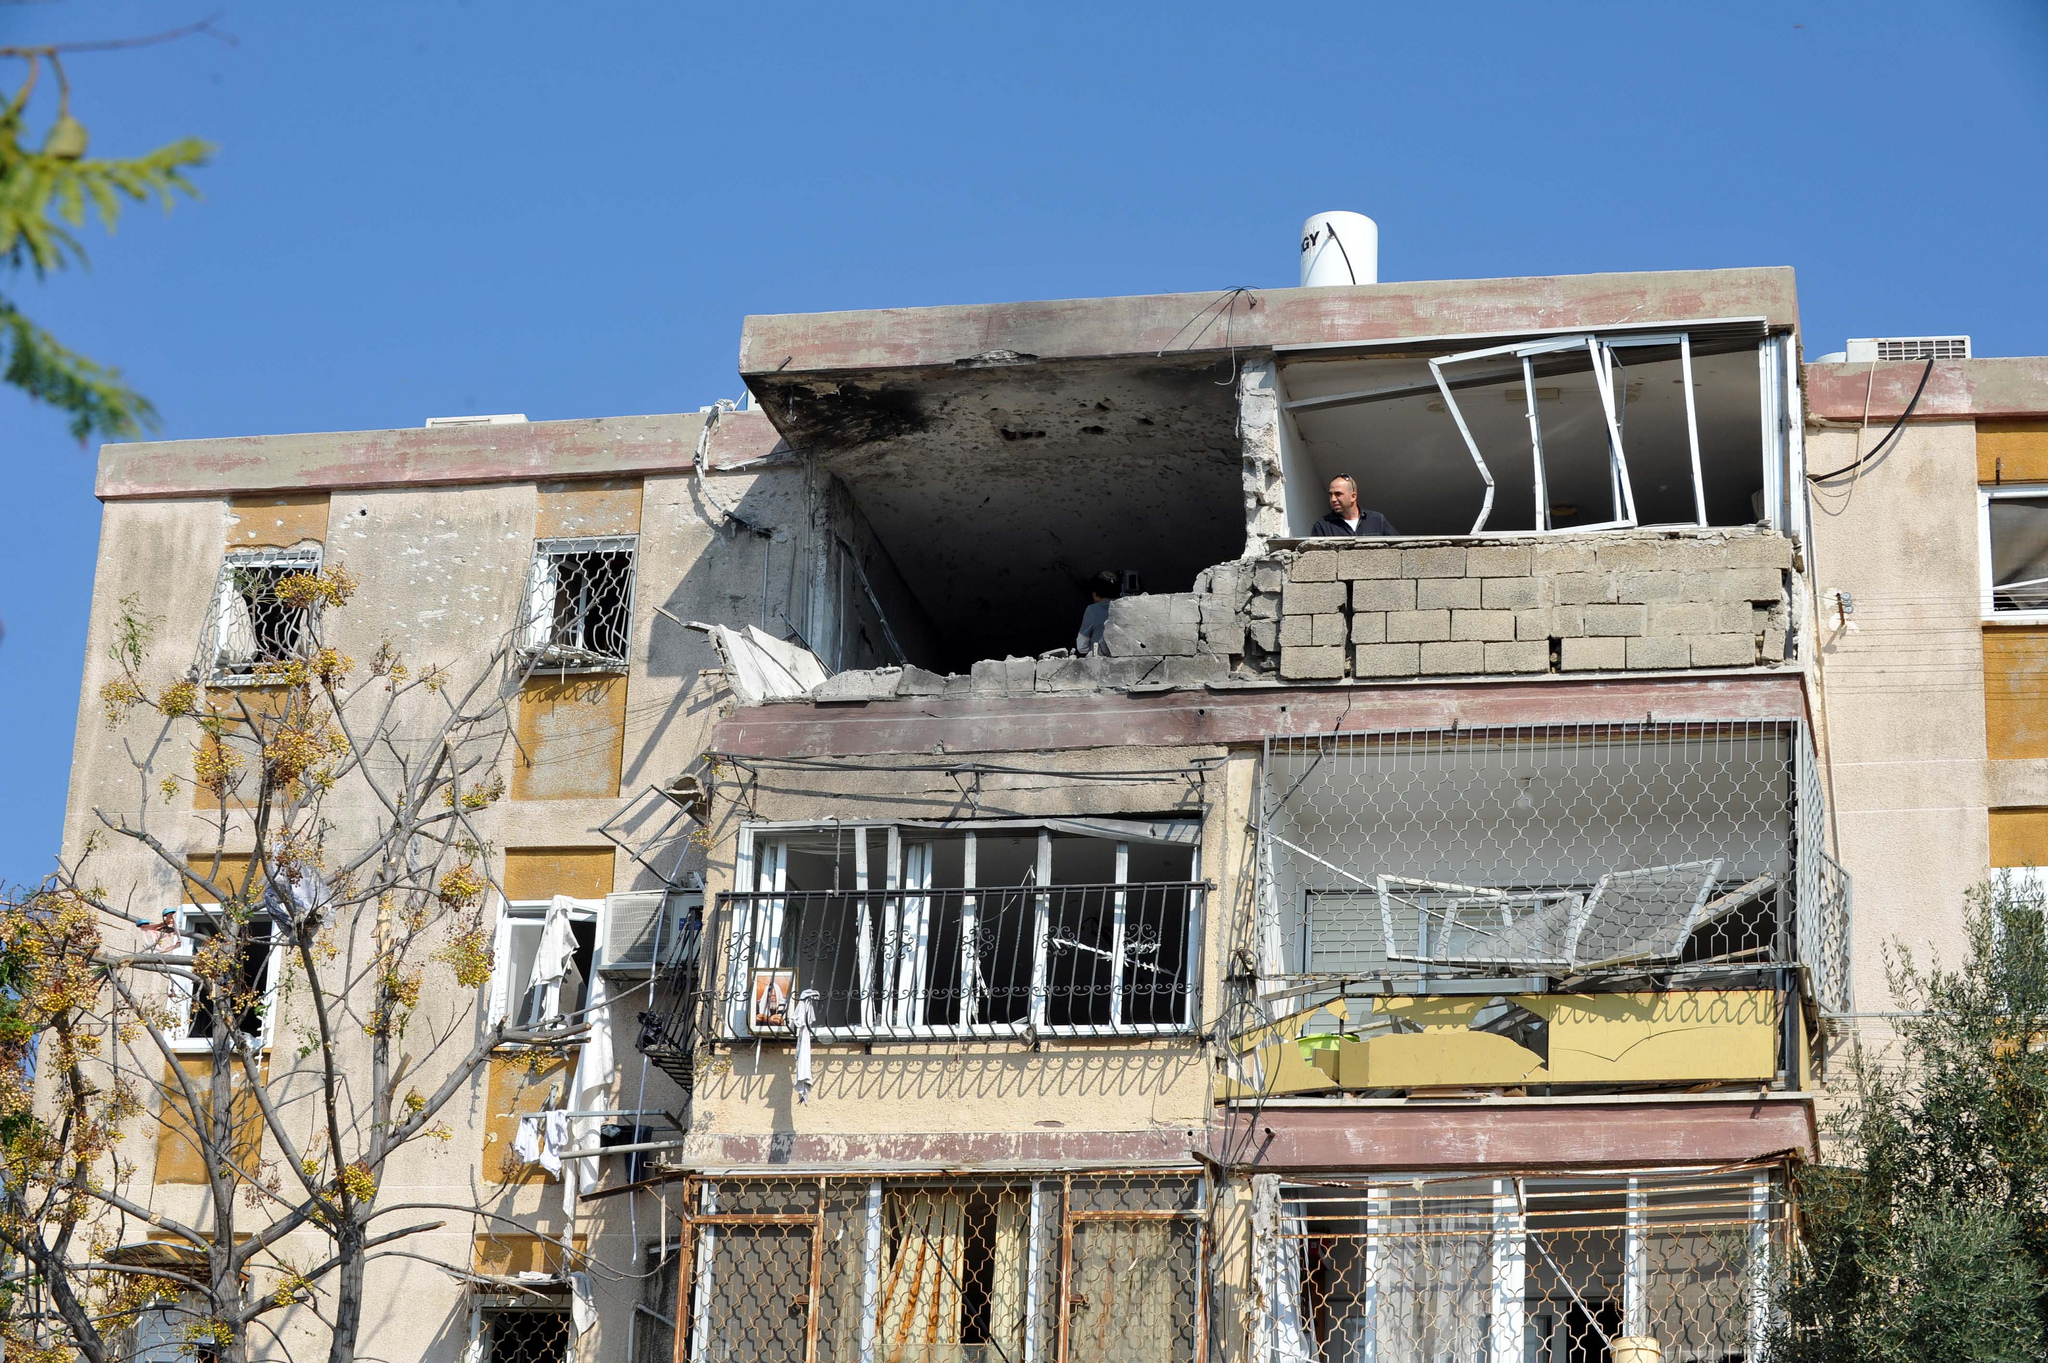 Apartment_building_in_the_Israeli_town_of_Kiryat_Malachi_that_took_a_direct_hit_from_a_Hamas_rocket._3_residents_were_killed__and_several_others_seriously_wounded_including_a_1.5_year_old_baby.jpg